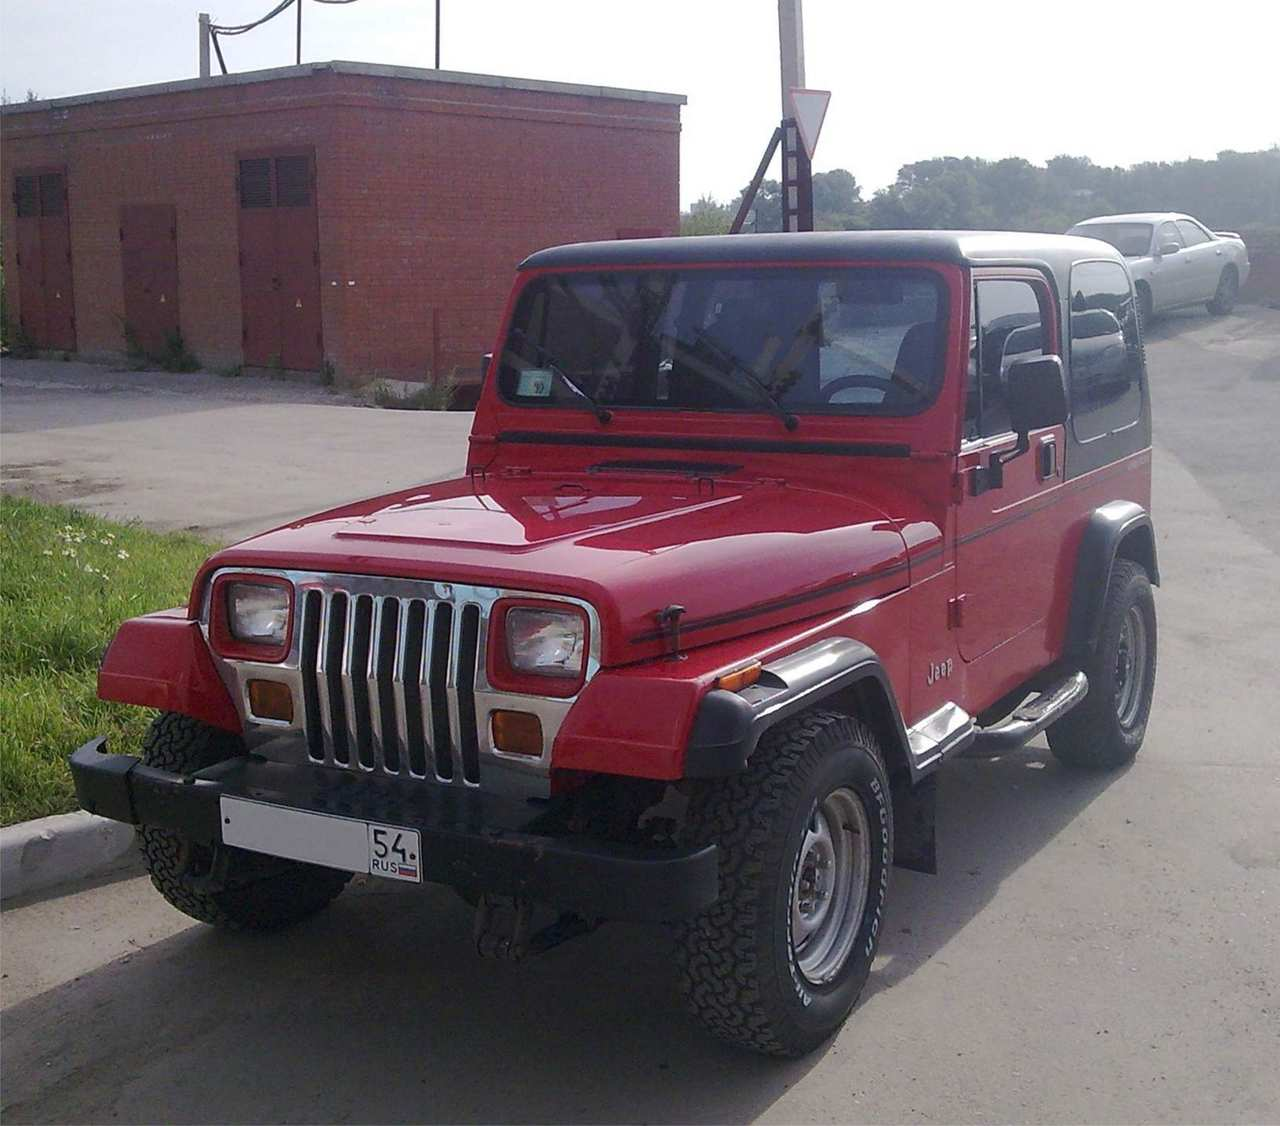 Used 1994 JEEP Wrangler Photos, 2500cc., Gasoline, Manual